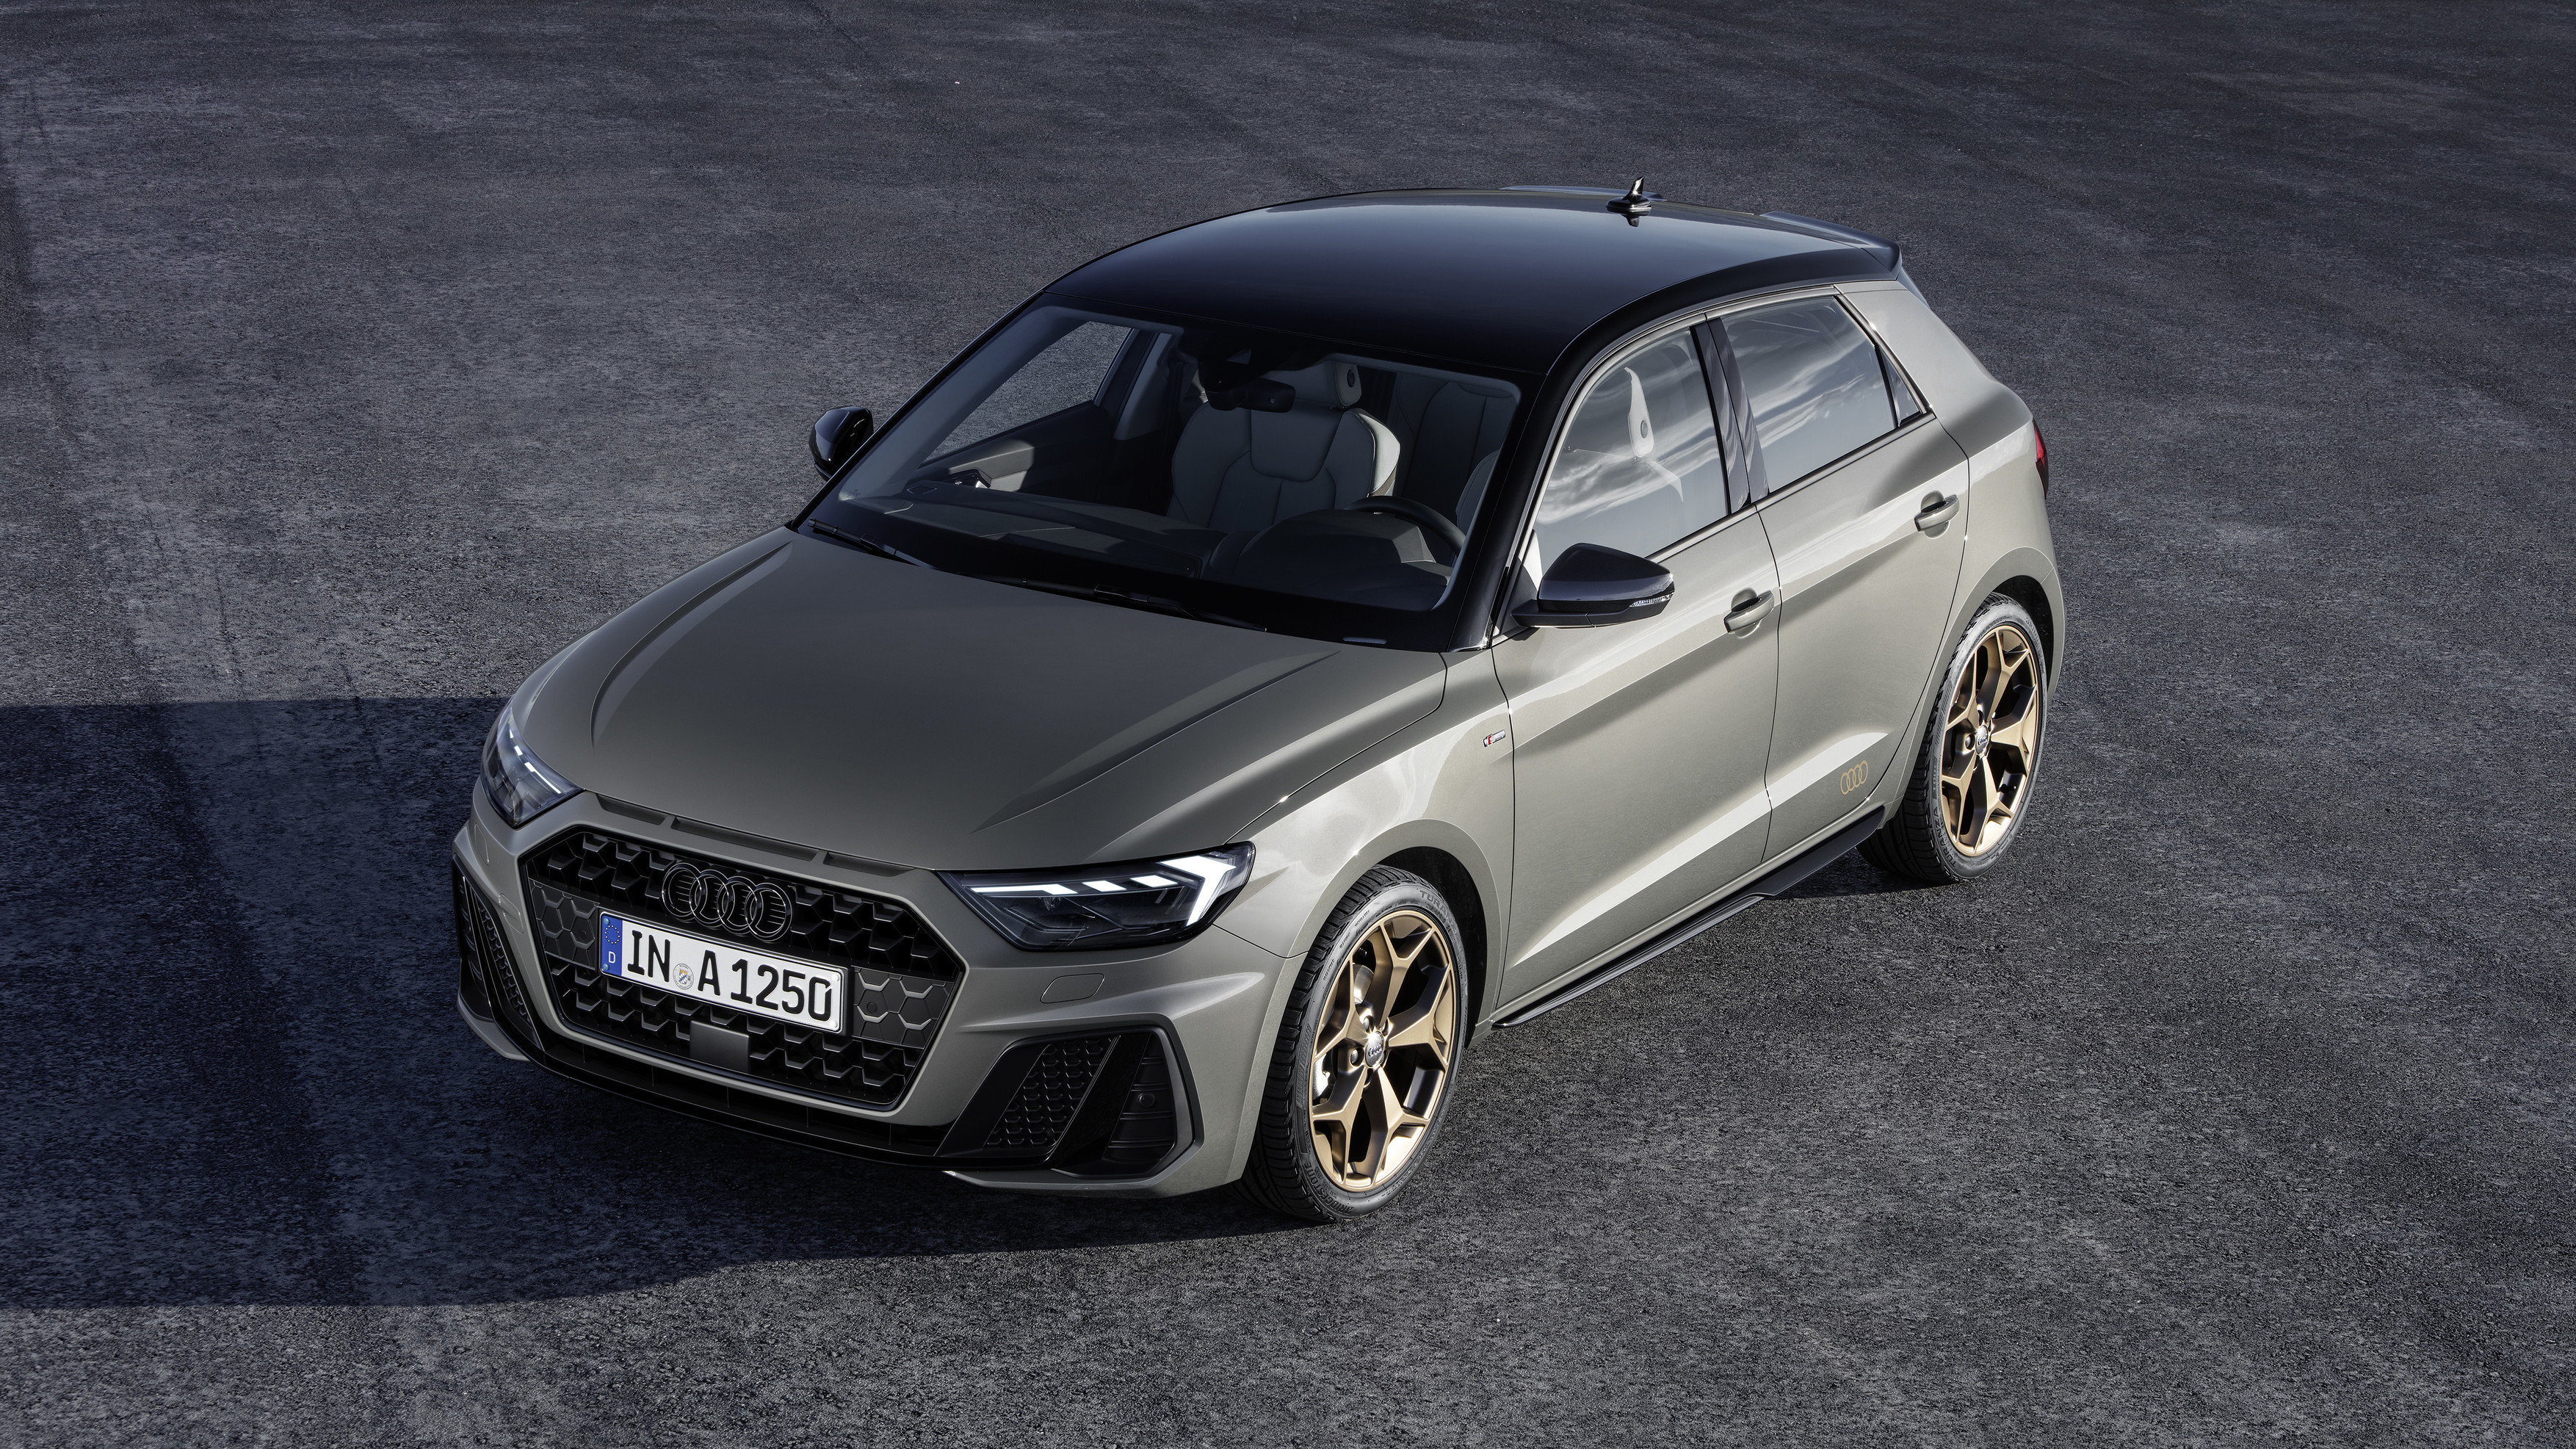 Audi A1 Sportback Front Right